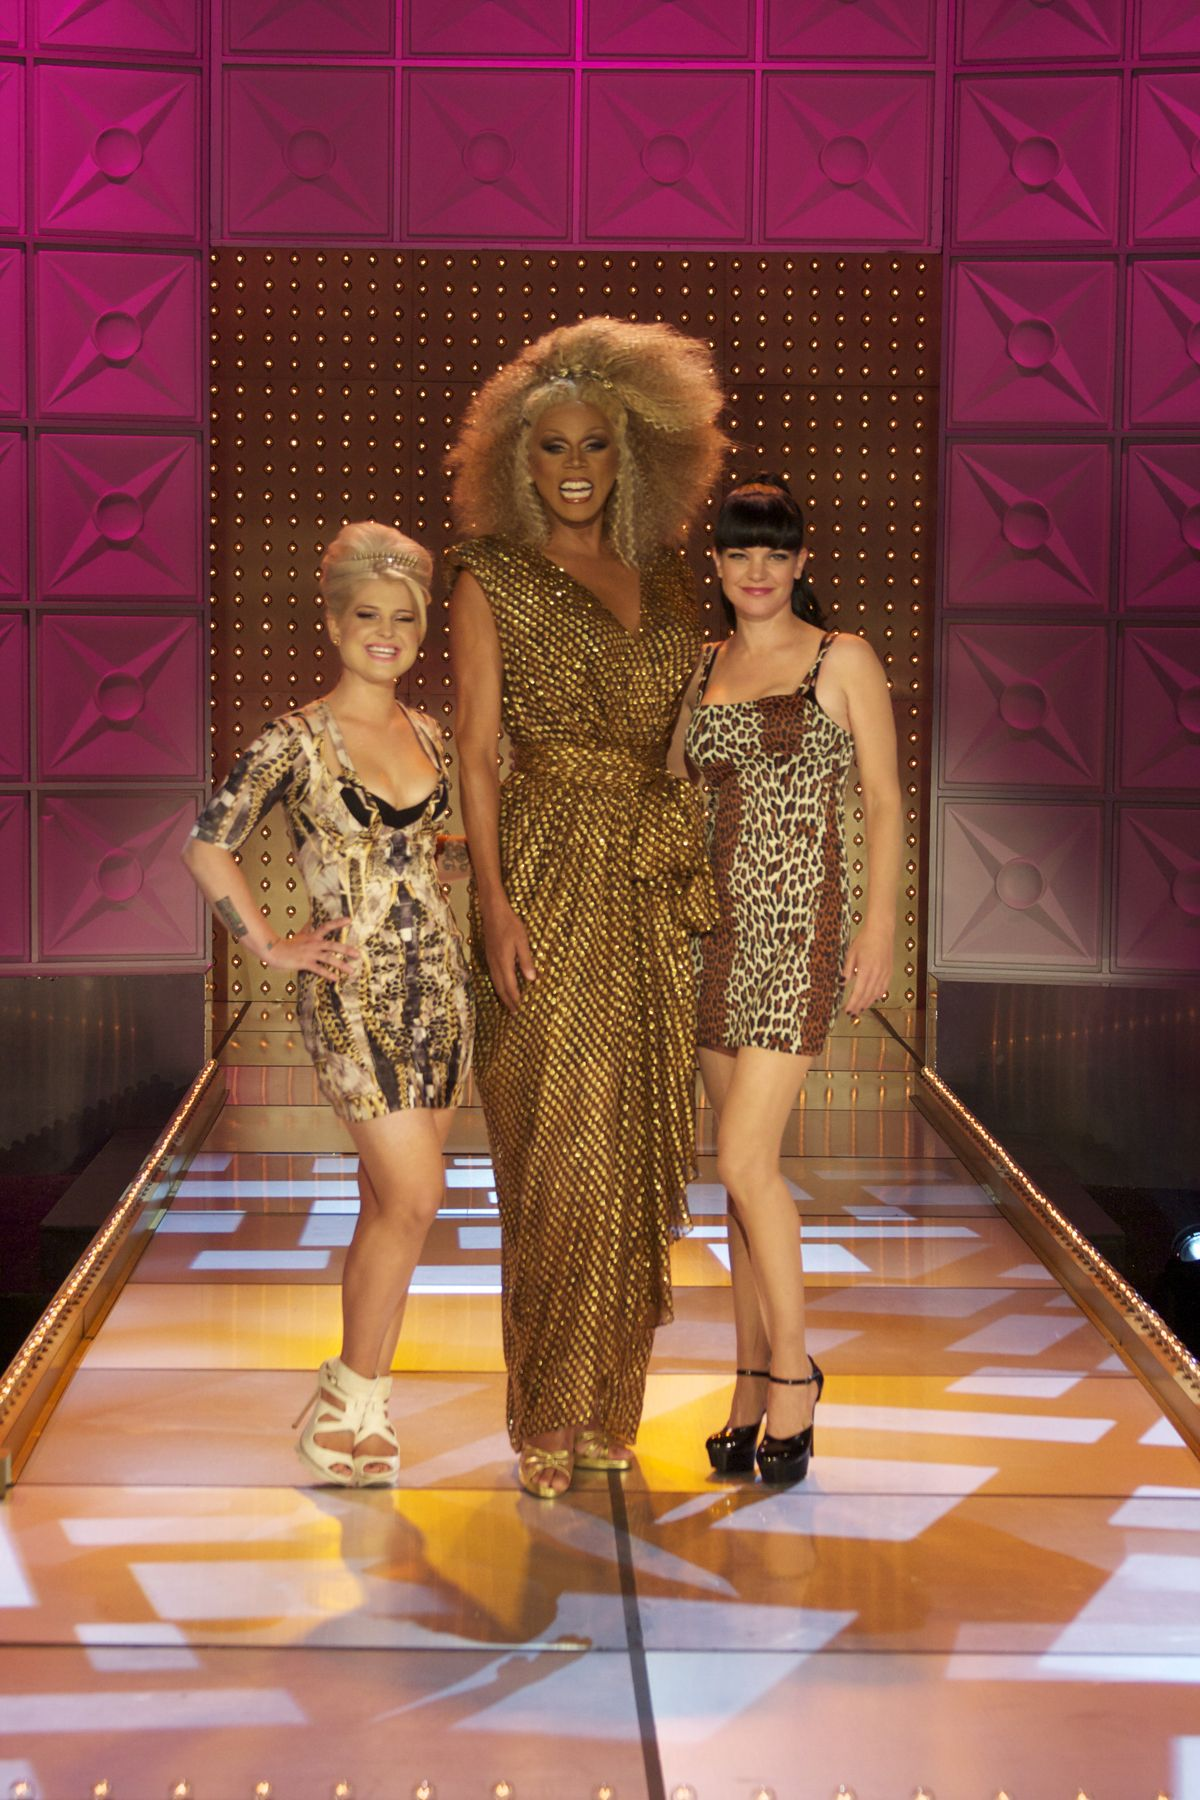 Rupaul's fabulous dress from the Float Your Boat episode of season 4